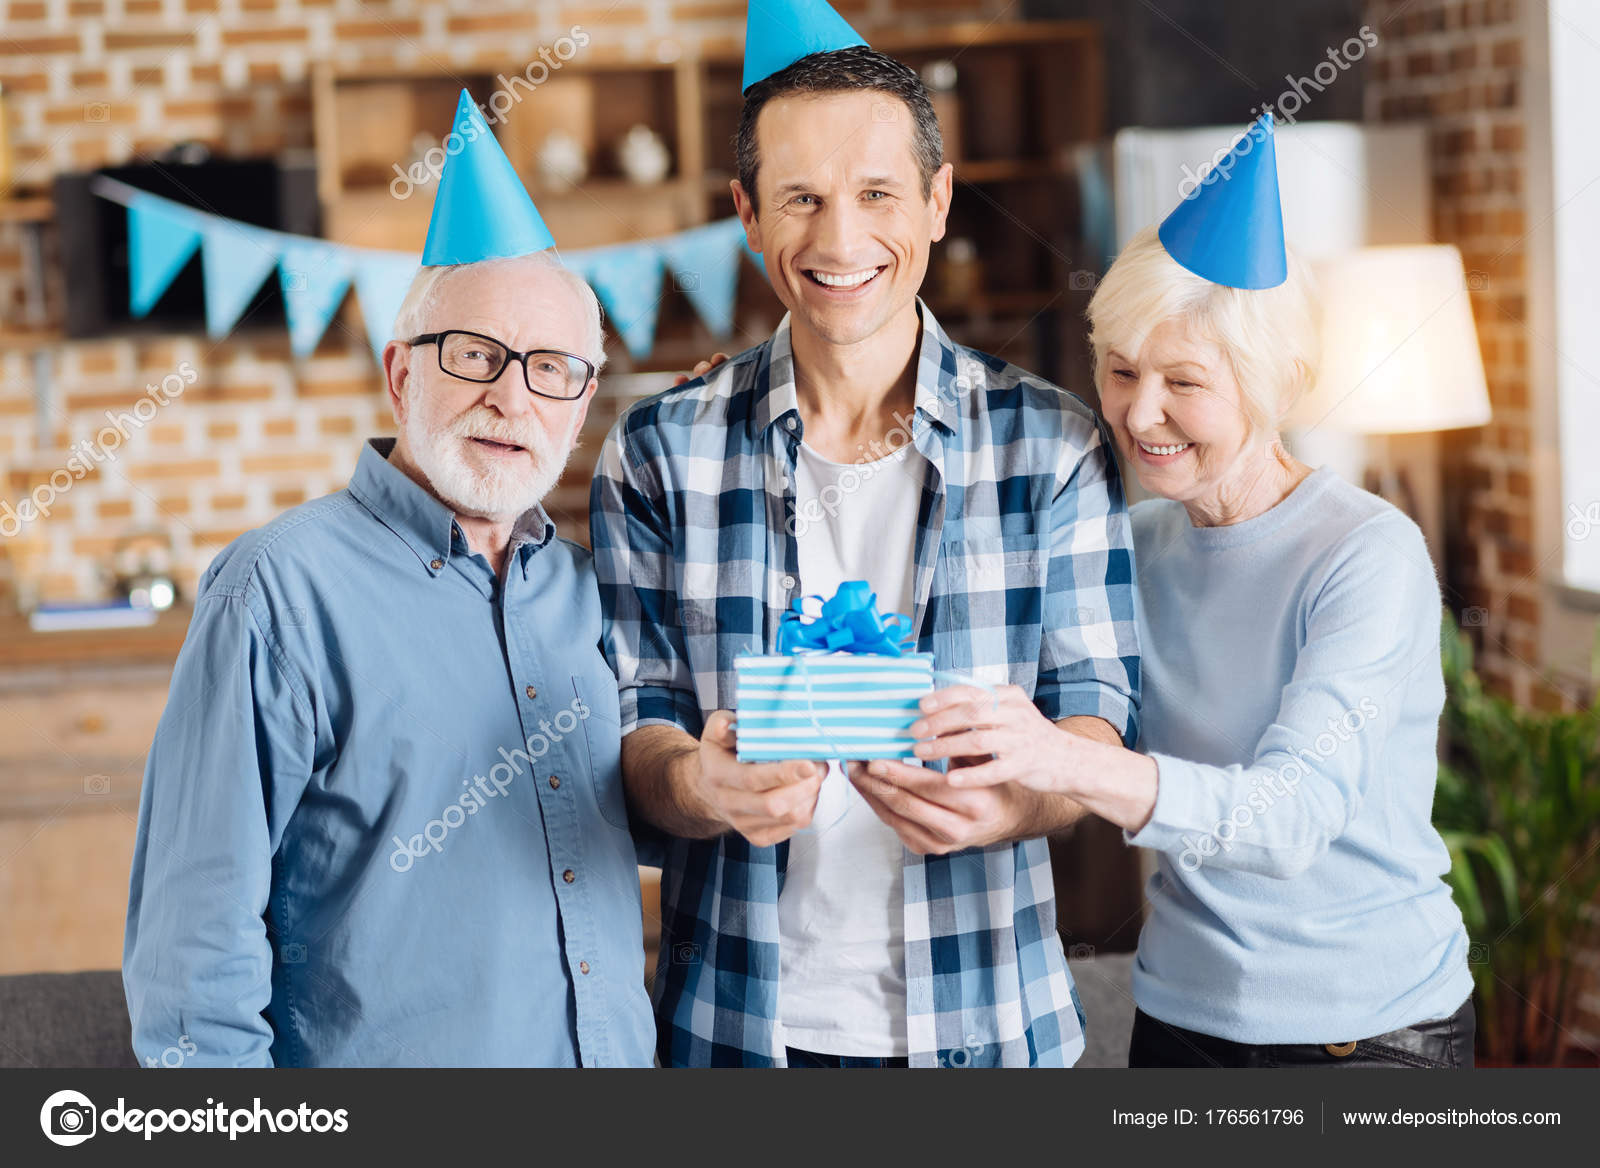 Upbeat Young Man Standing Between His Elderly Parents And Holding Birthday Gift While All Of Them Posing For The Camera Wearing Party Hats Photo